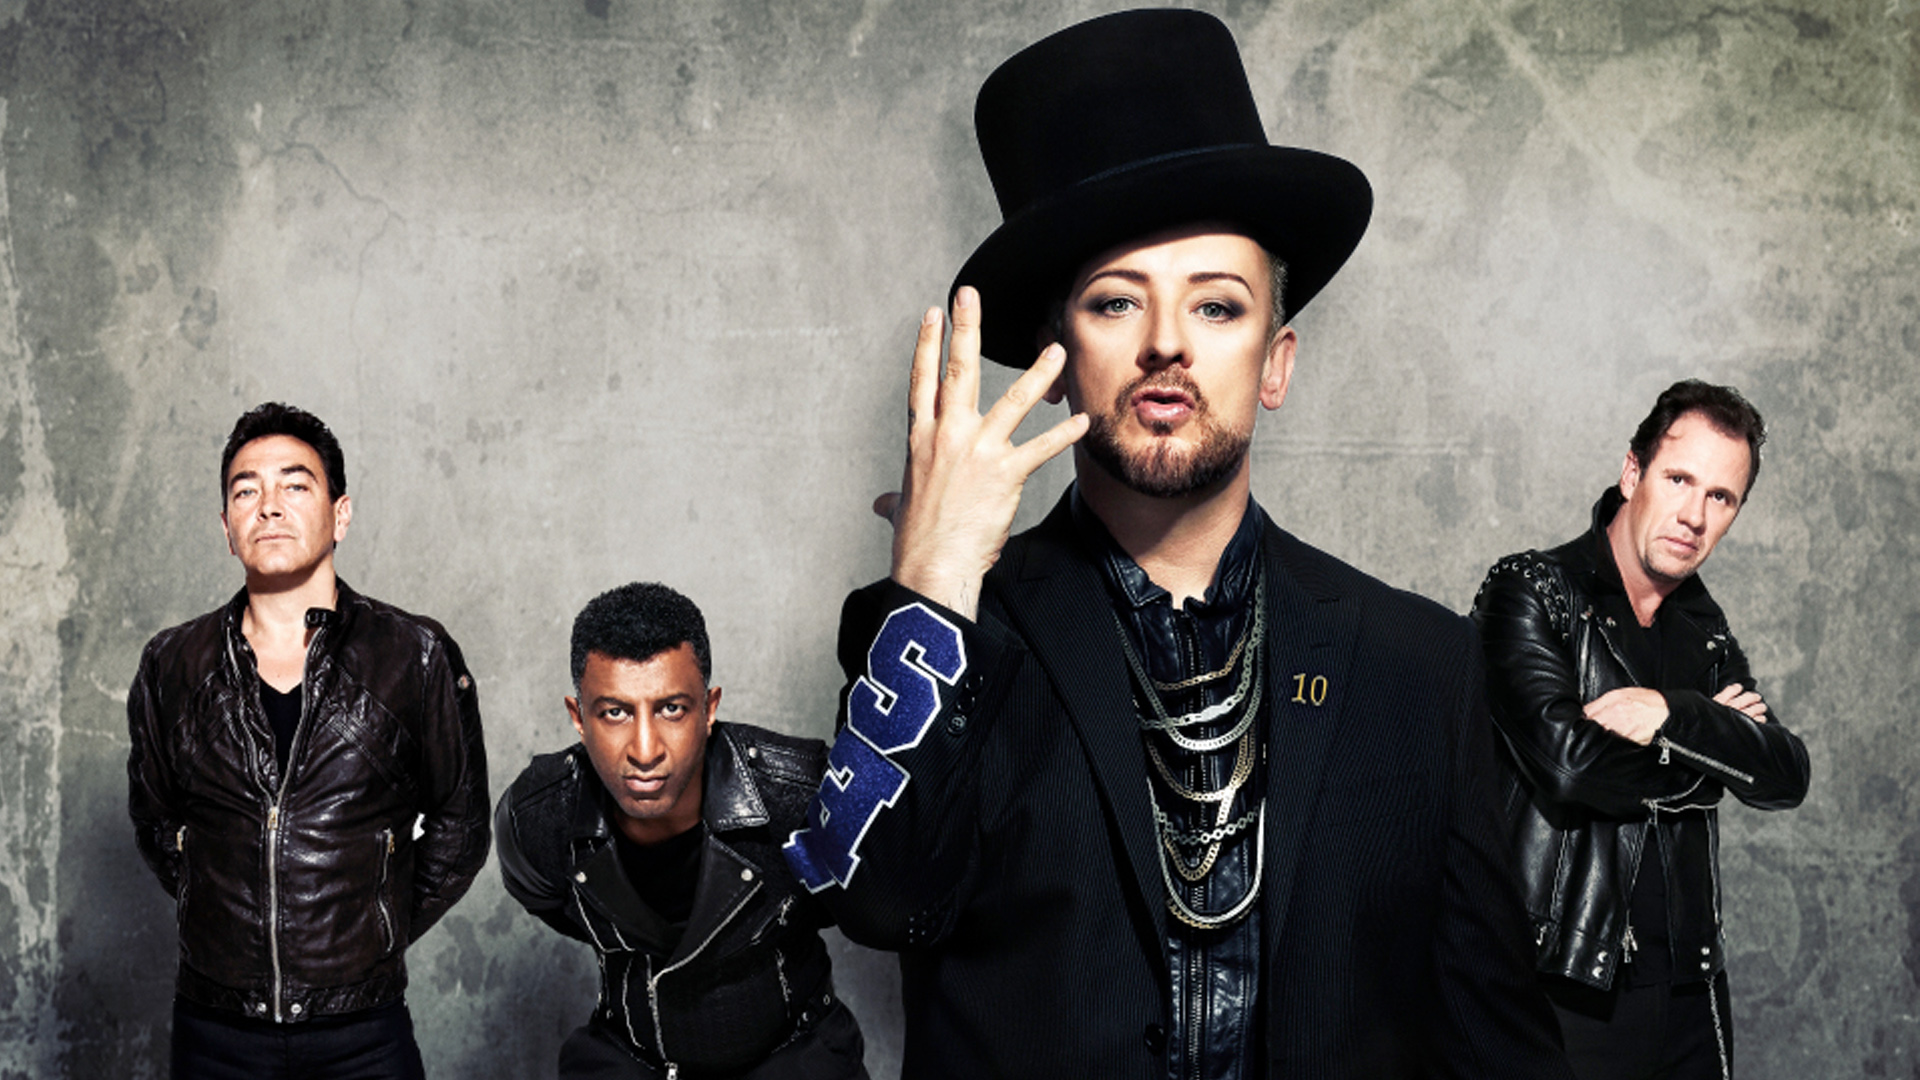 Culture Club concert at Knoxville Civic Auditorium and Coliseum canceled refunds issued to ticket ers